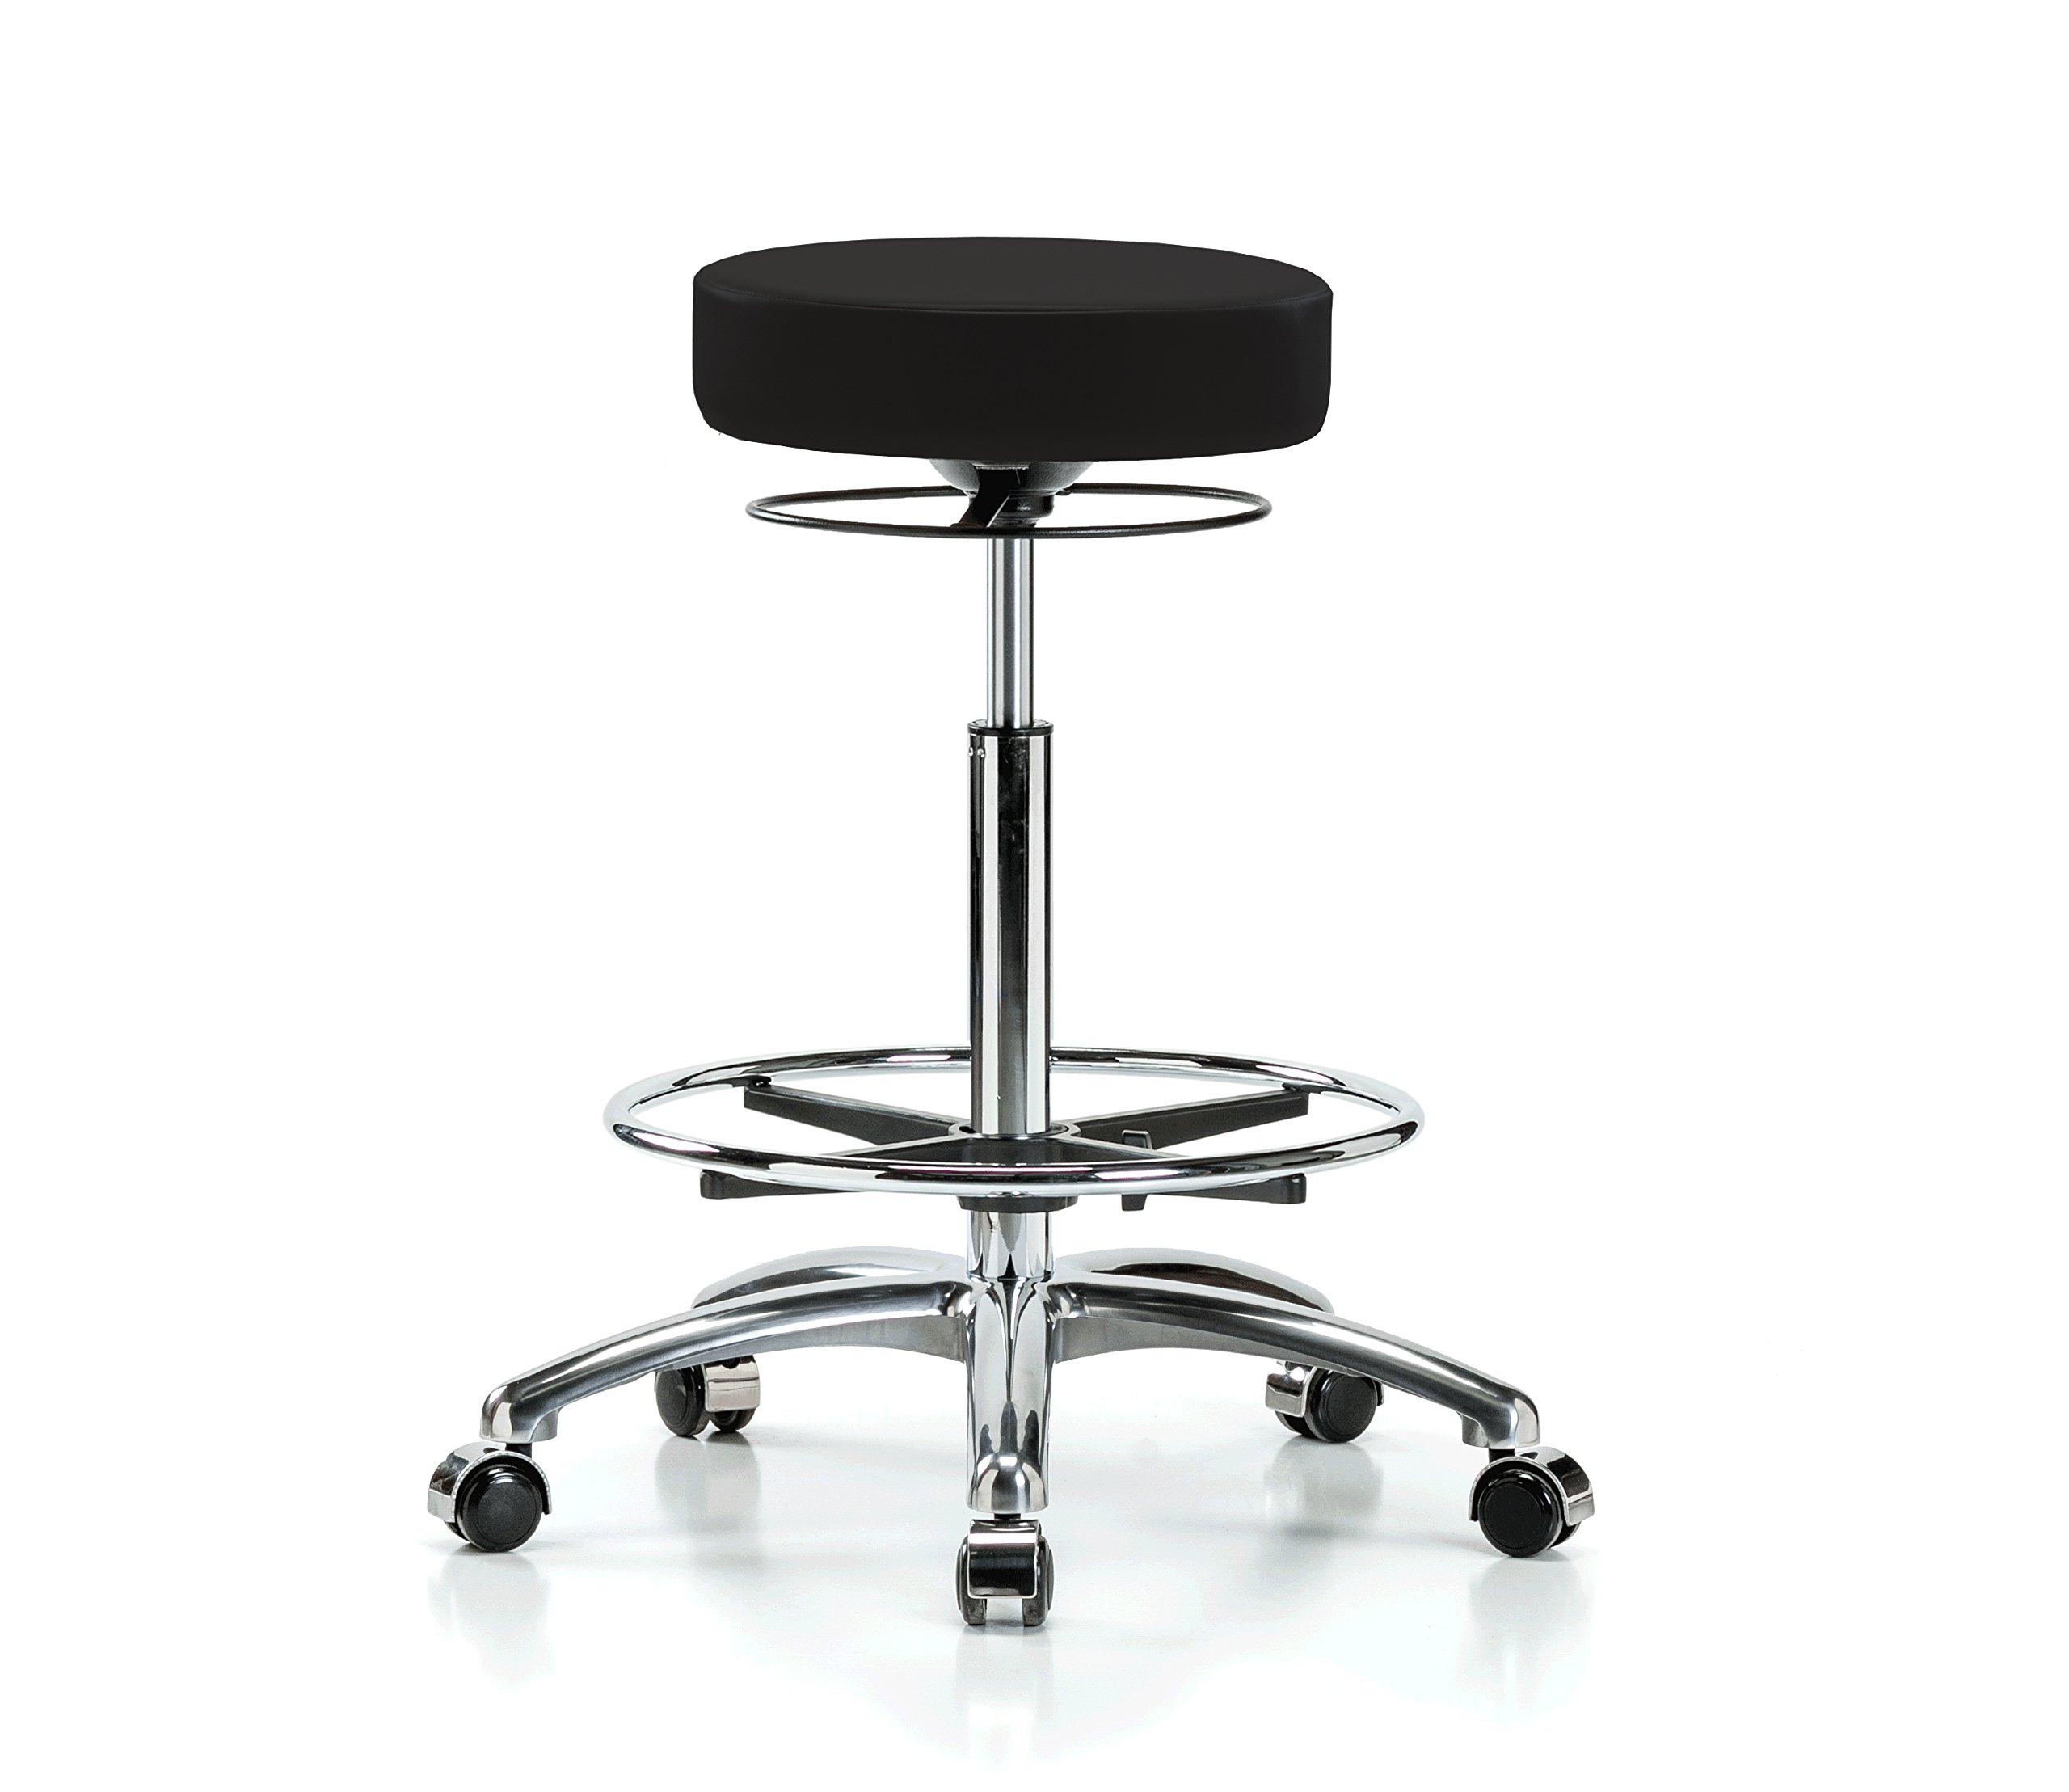 Perch Chrome Stella Rolling Adjustable Stool with Footring Medical Salon Spa Massage Tattoo Office 25'' - 35'' (Hard Floor Casters/Black Vinyl)